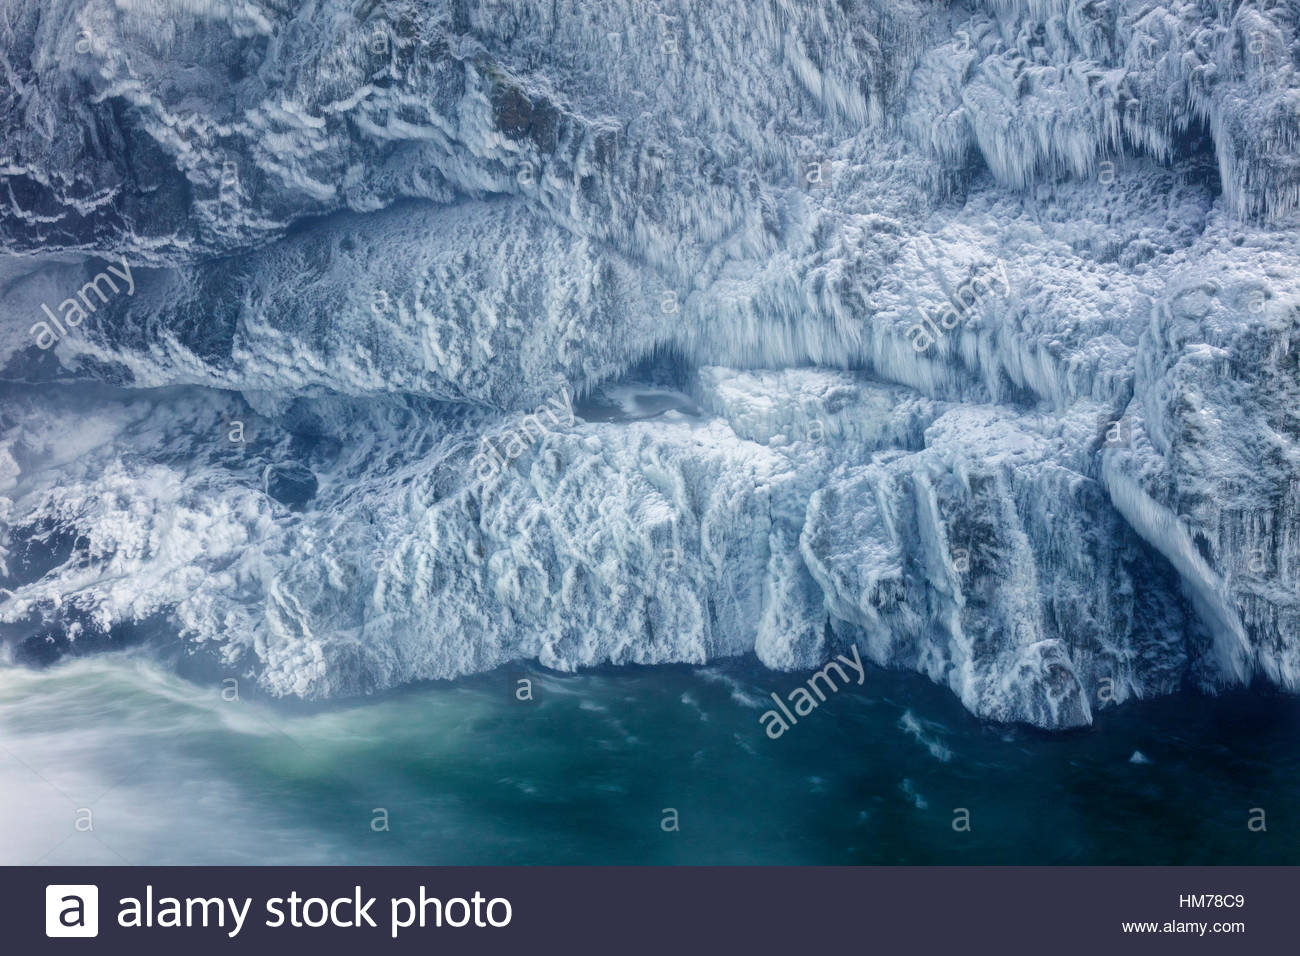 Spray from Snoqualmie Falls, located near Snoqualmie, Washington, freezes to the walls of the gorge downstream on - Stock Image